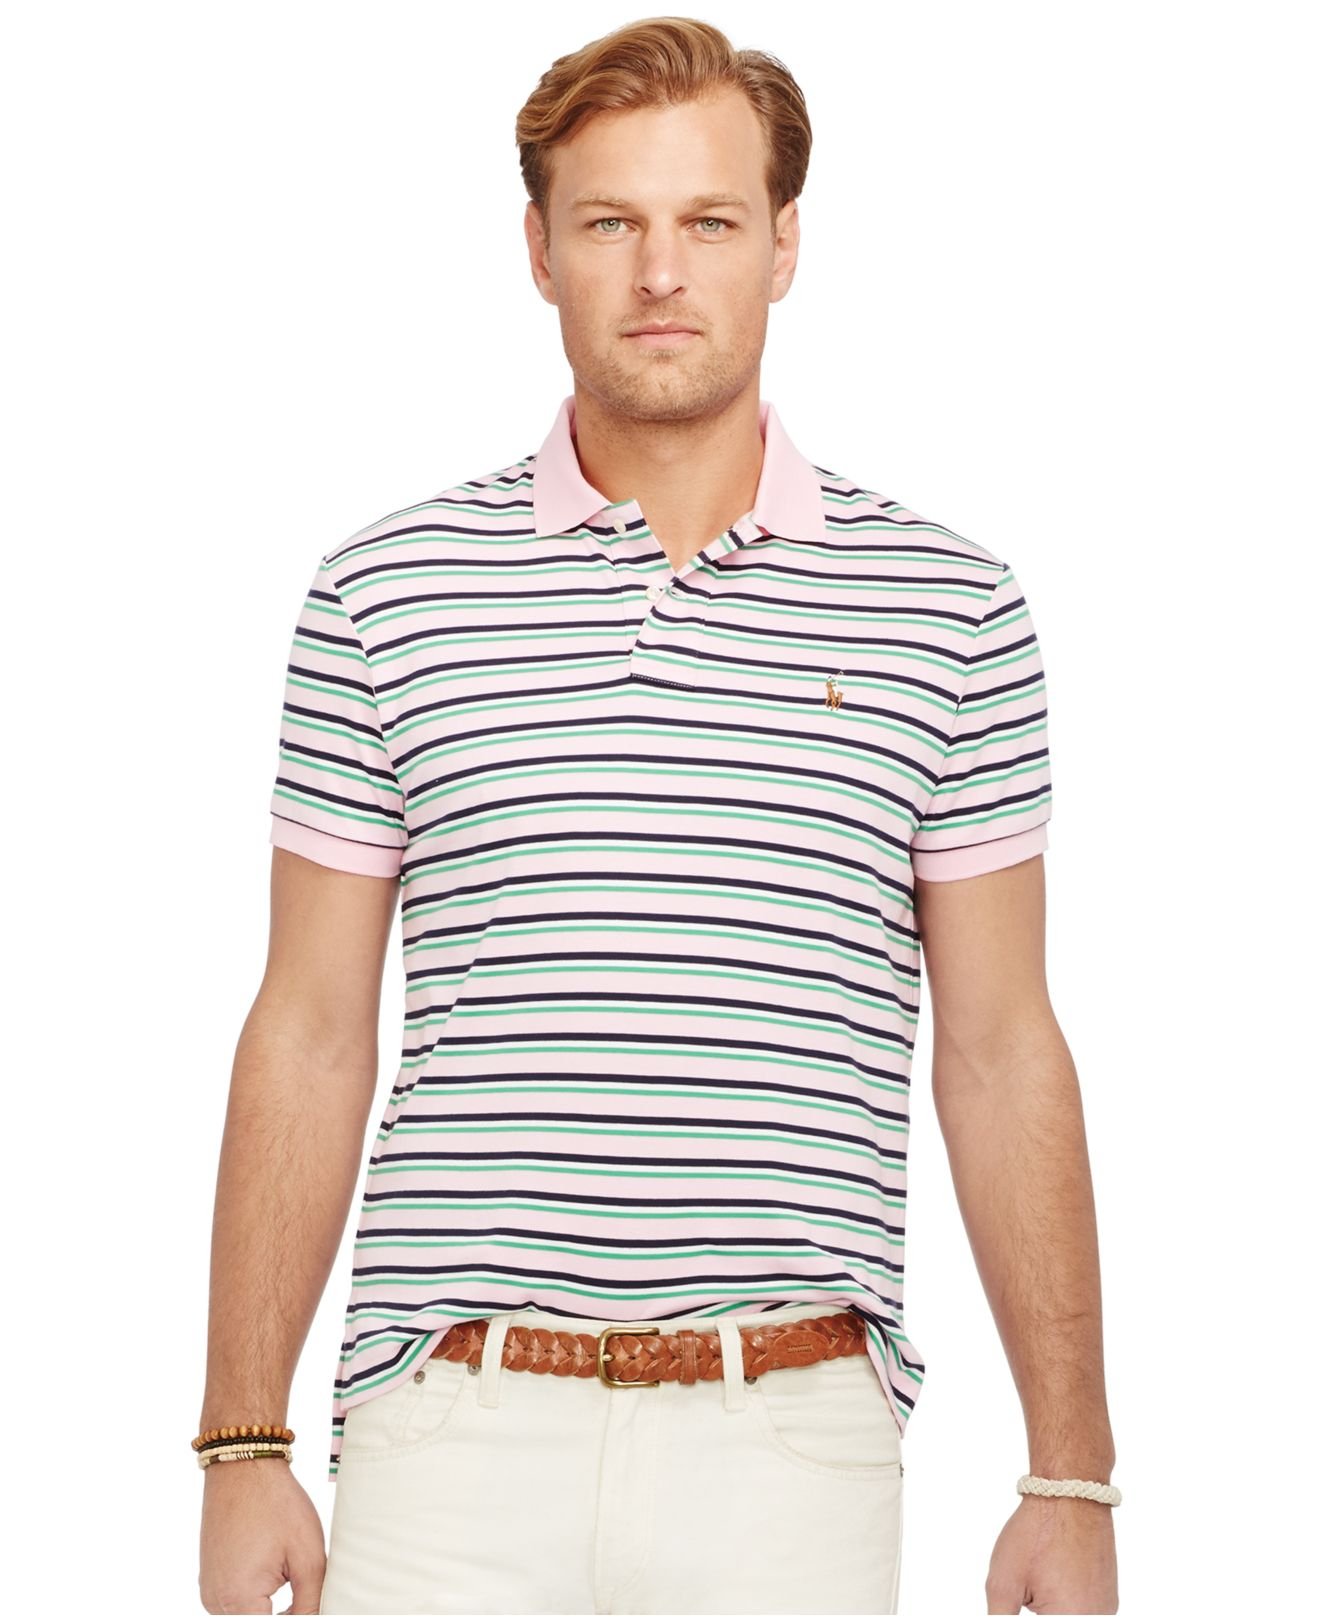 ada4cfc6 Polo Ralph Lauren Big And Tall Striped Pima Soft-touch Polo Shirt in ...